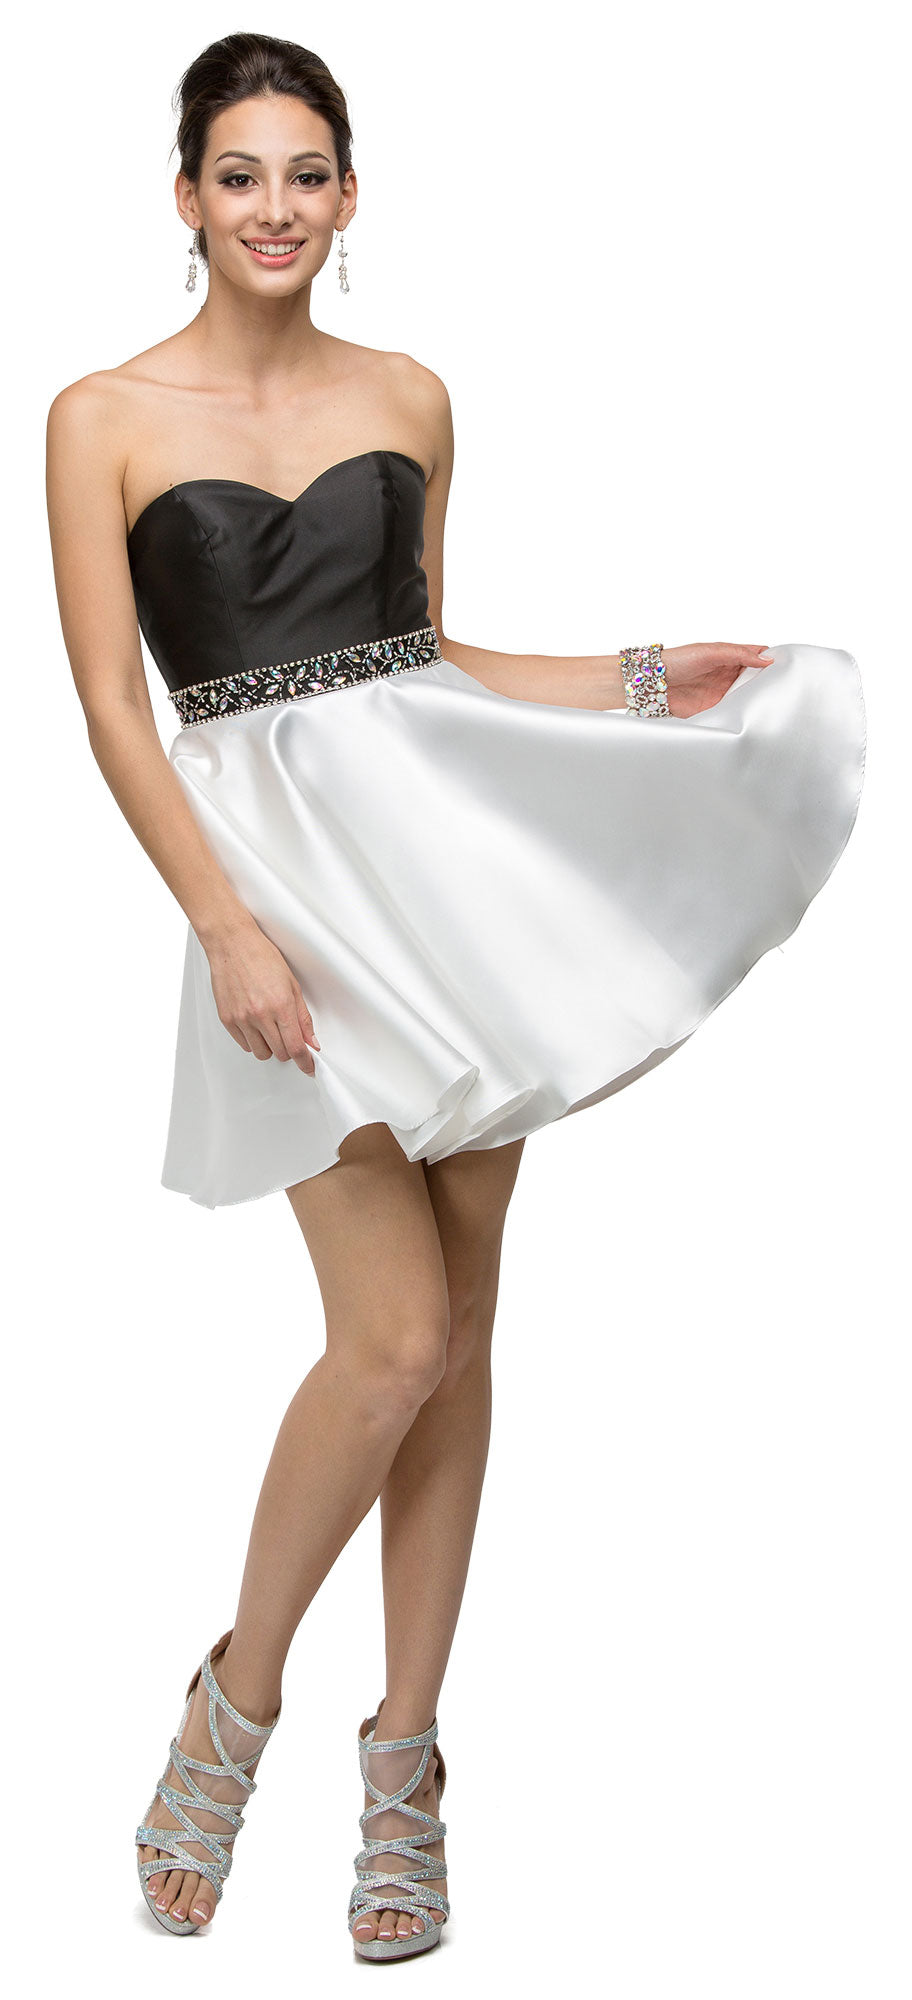 Image of Strapless Sweetheart Two Tone Short Homecoming Party Dress in Black/White